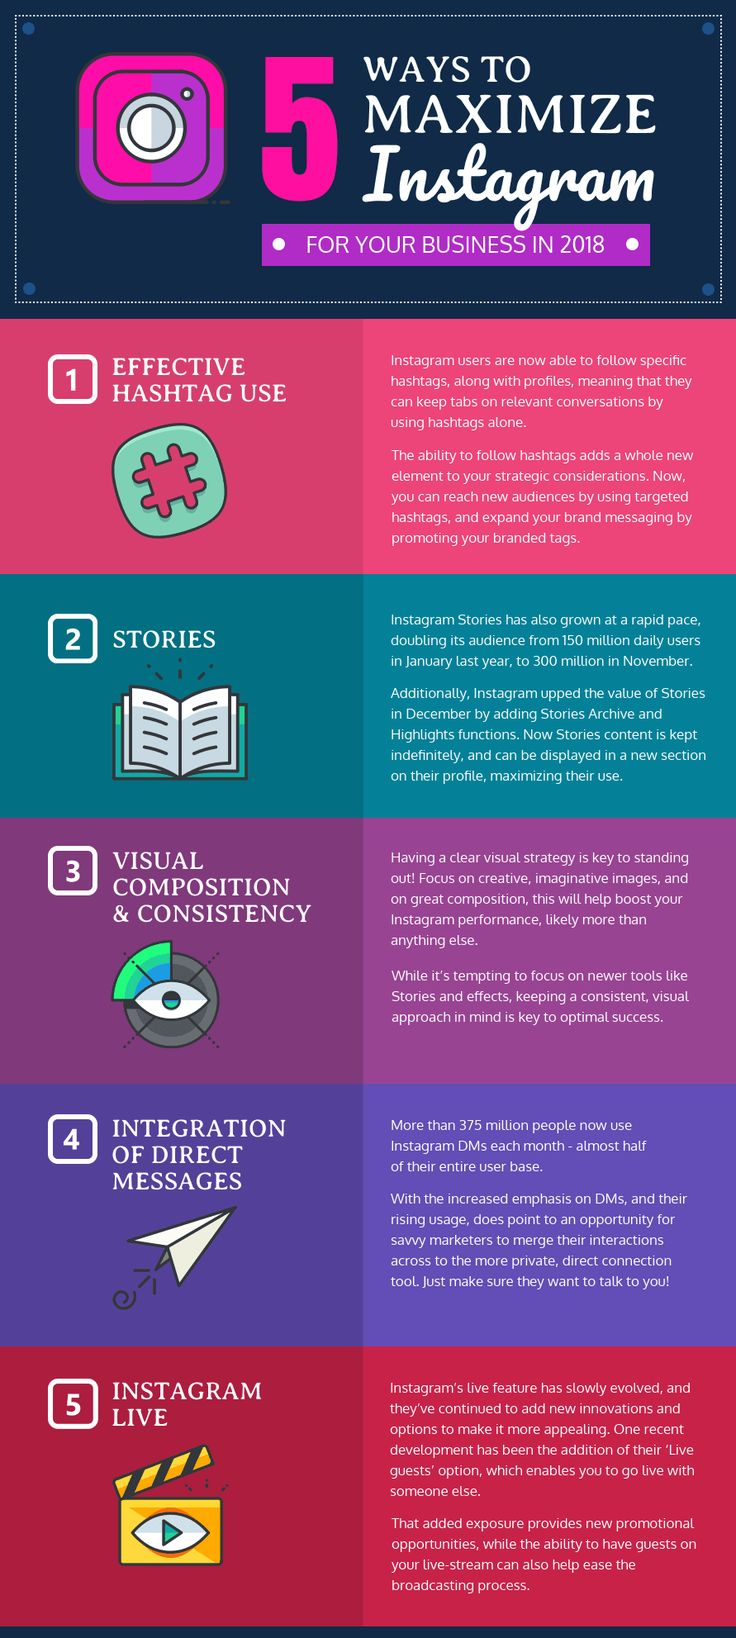 37 best Infographic Templates images on Pinterest | Infographic ...